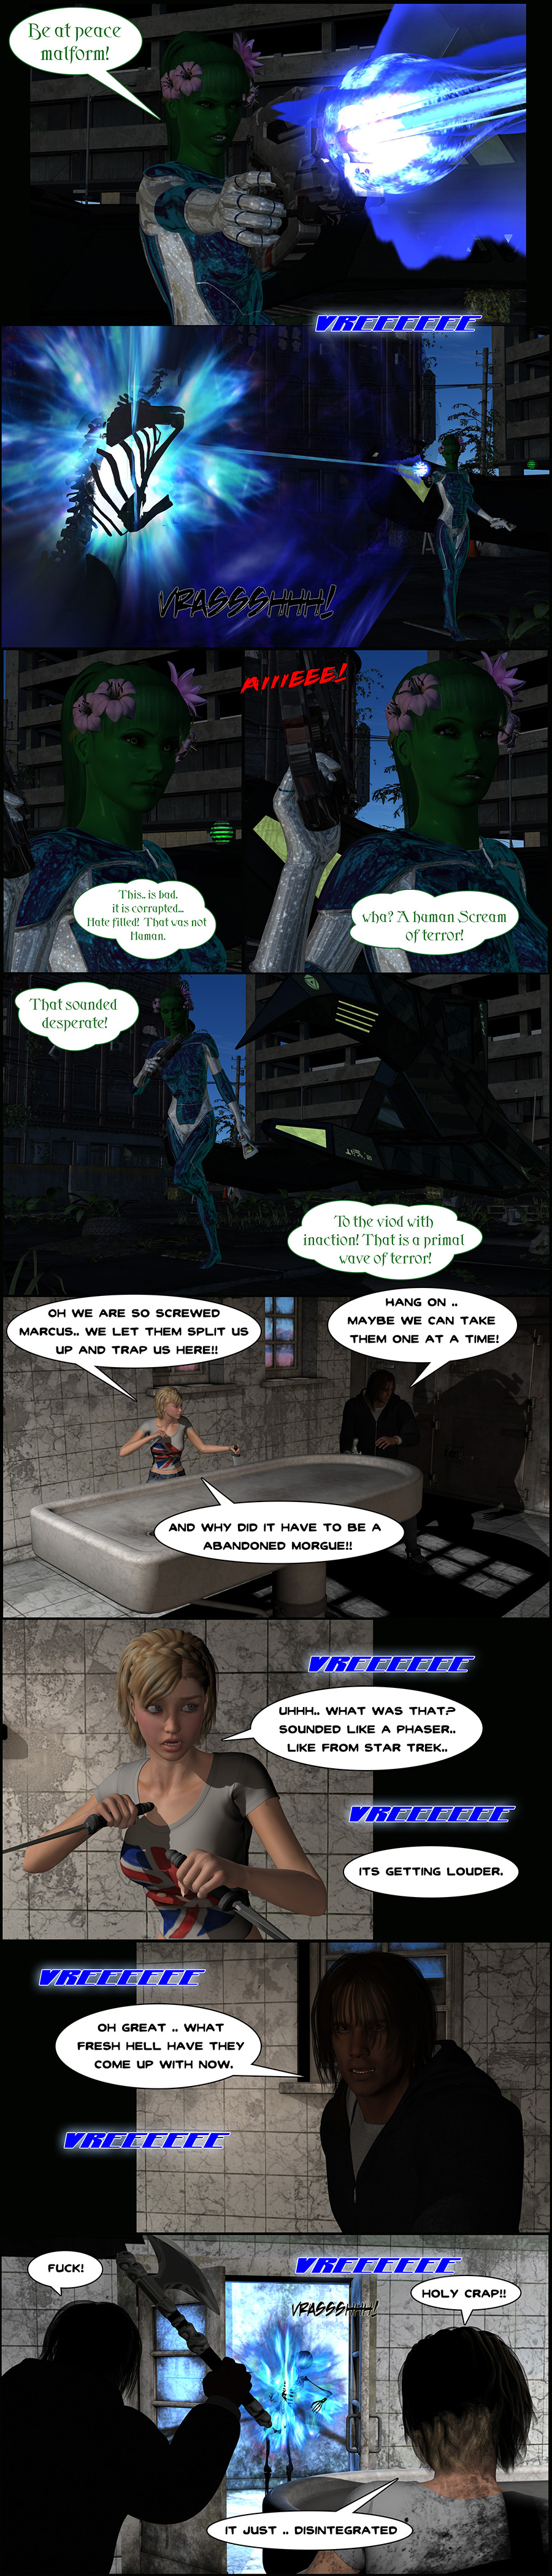 The Restless Dead [page 2] by Centcomm